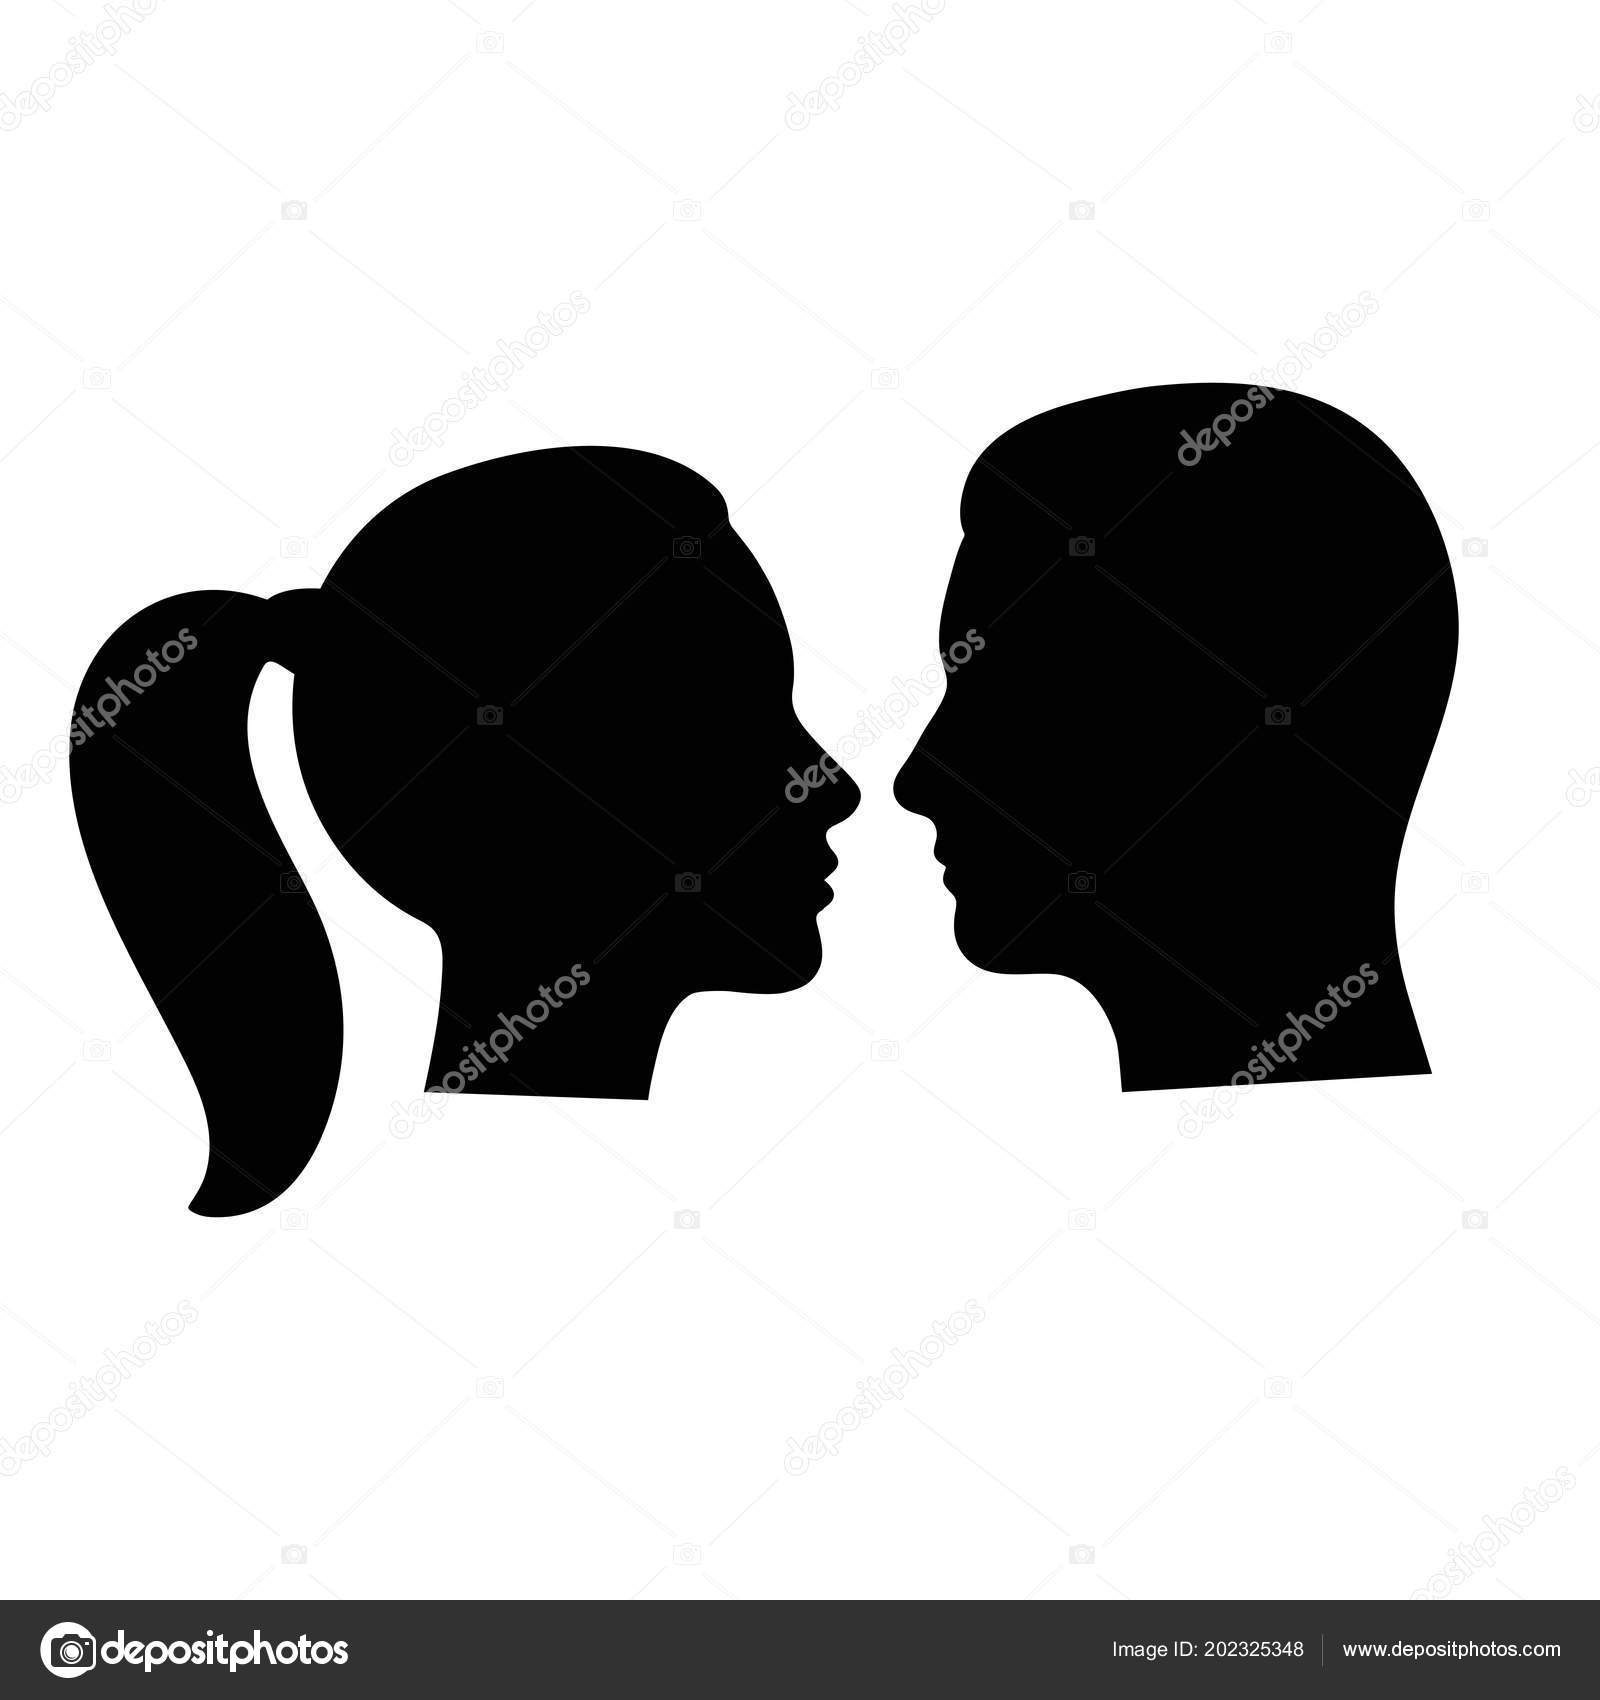 Icon Face Silhouette Man Woman Avatar Profile Face Silhouette Icon Isolated White Background Stock Vector C Elena3567 202325348